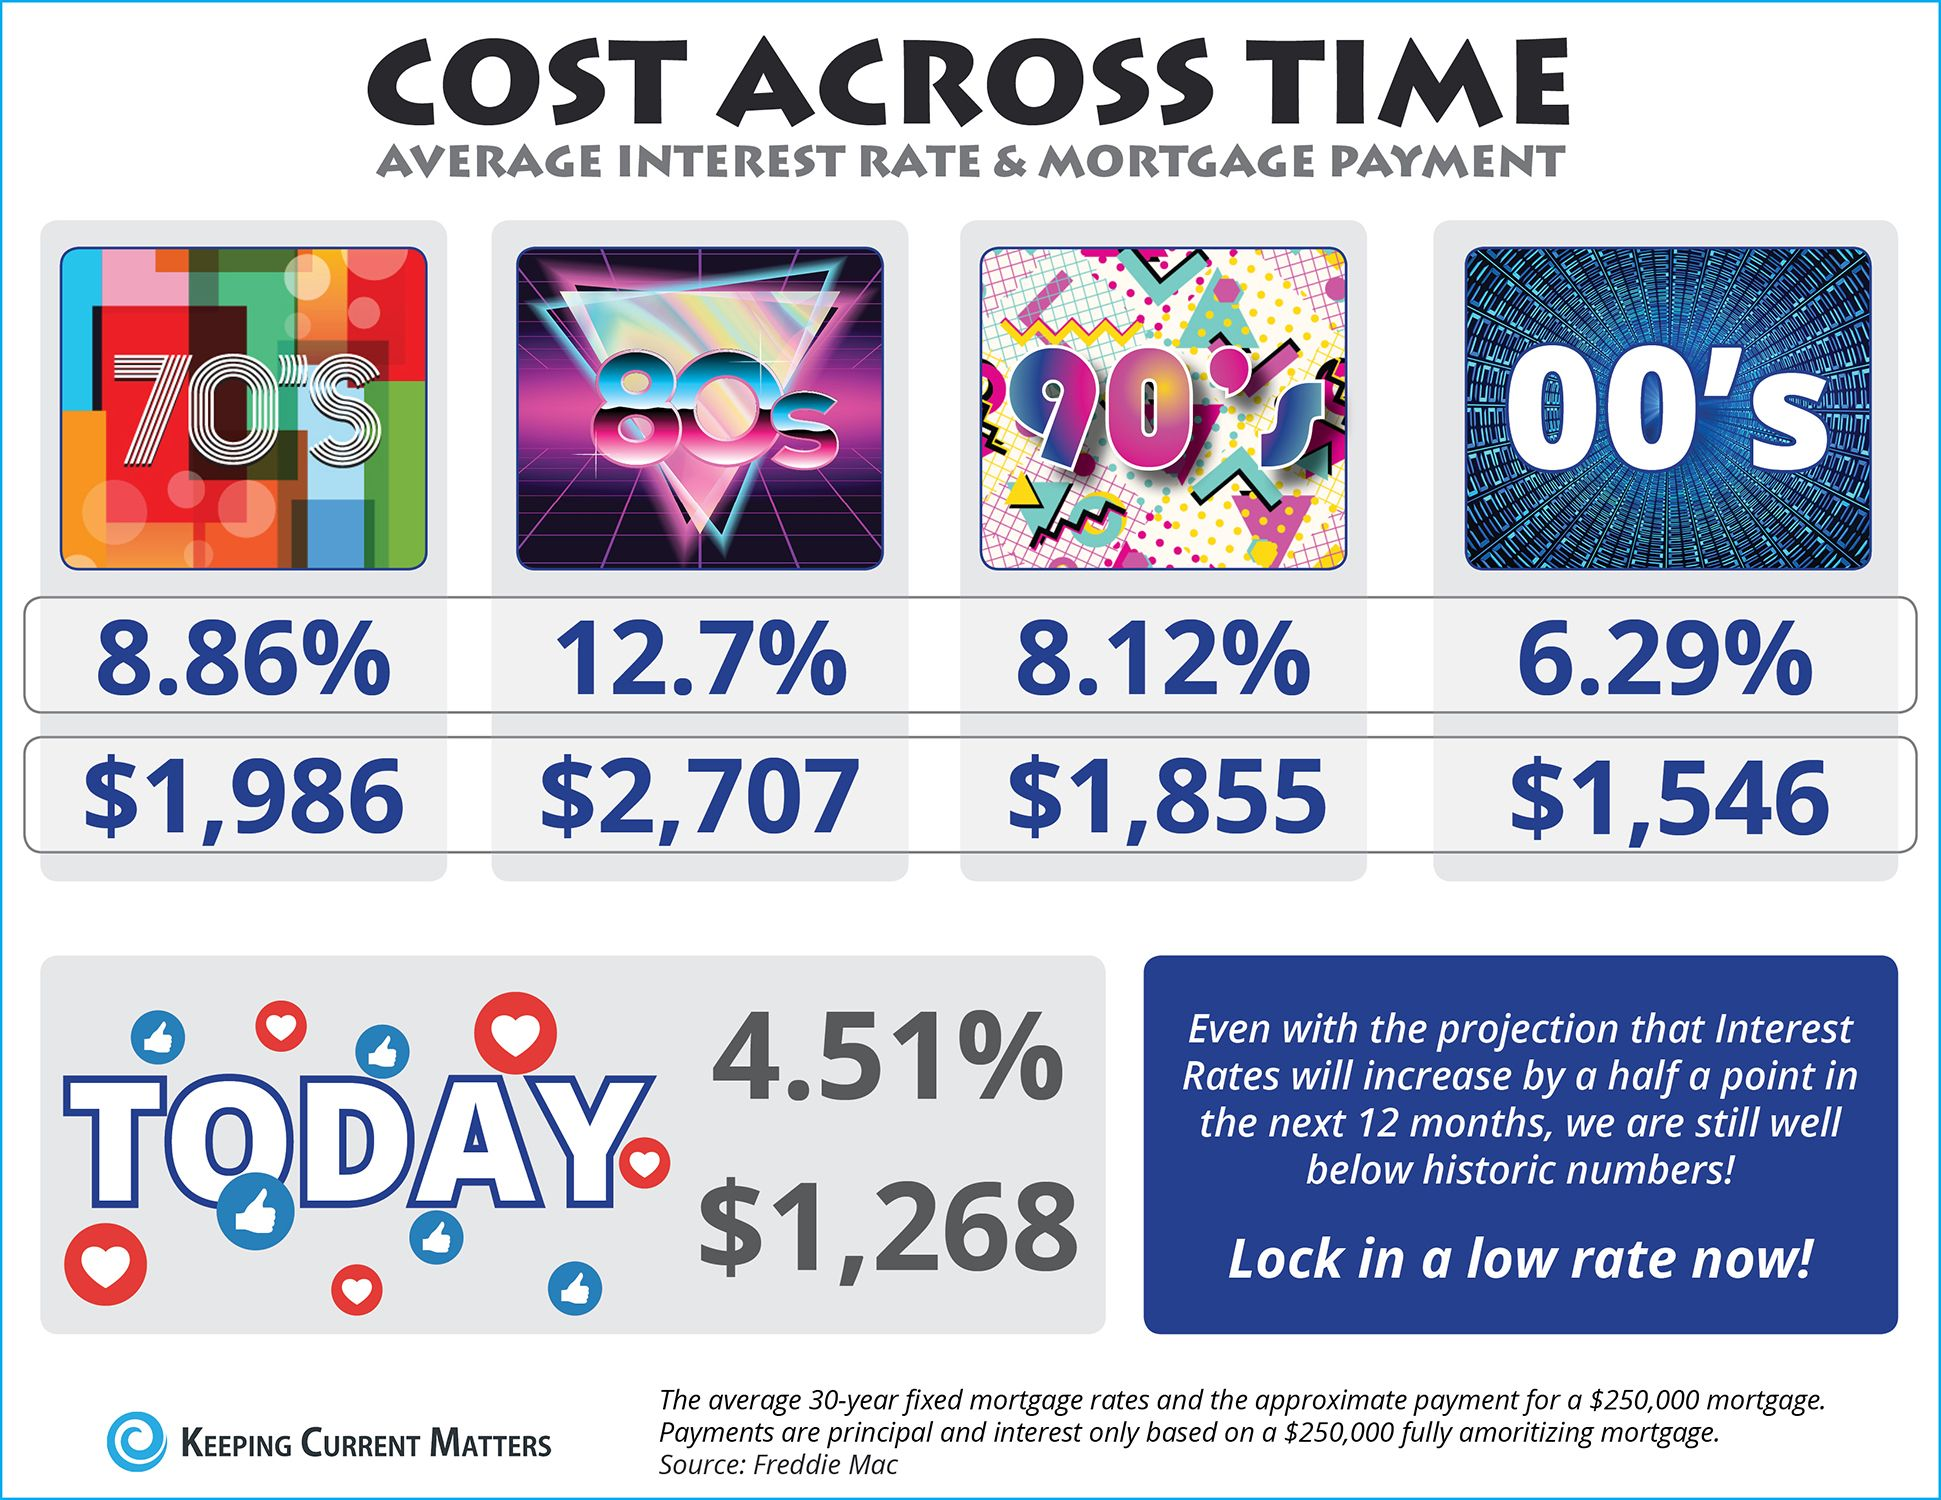 The Cost Across Time Infographic Mortgage Interest Rates Mortgage Payment Mortgage Rates